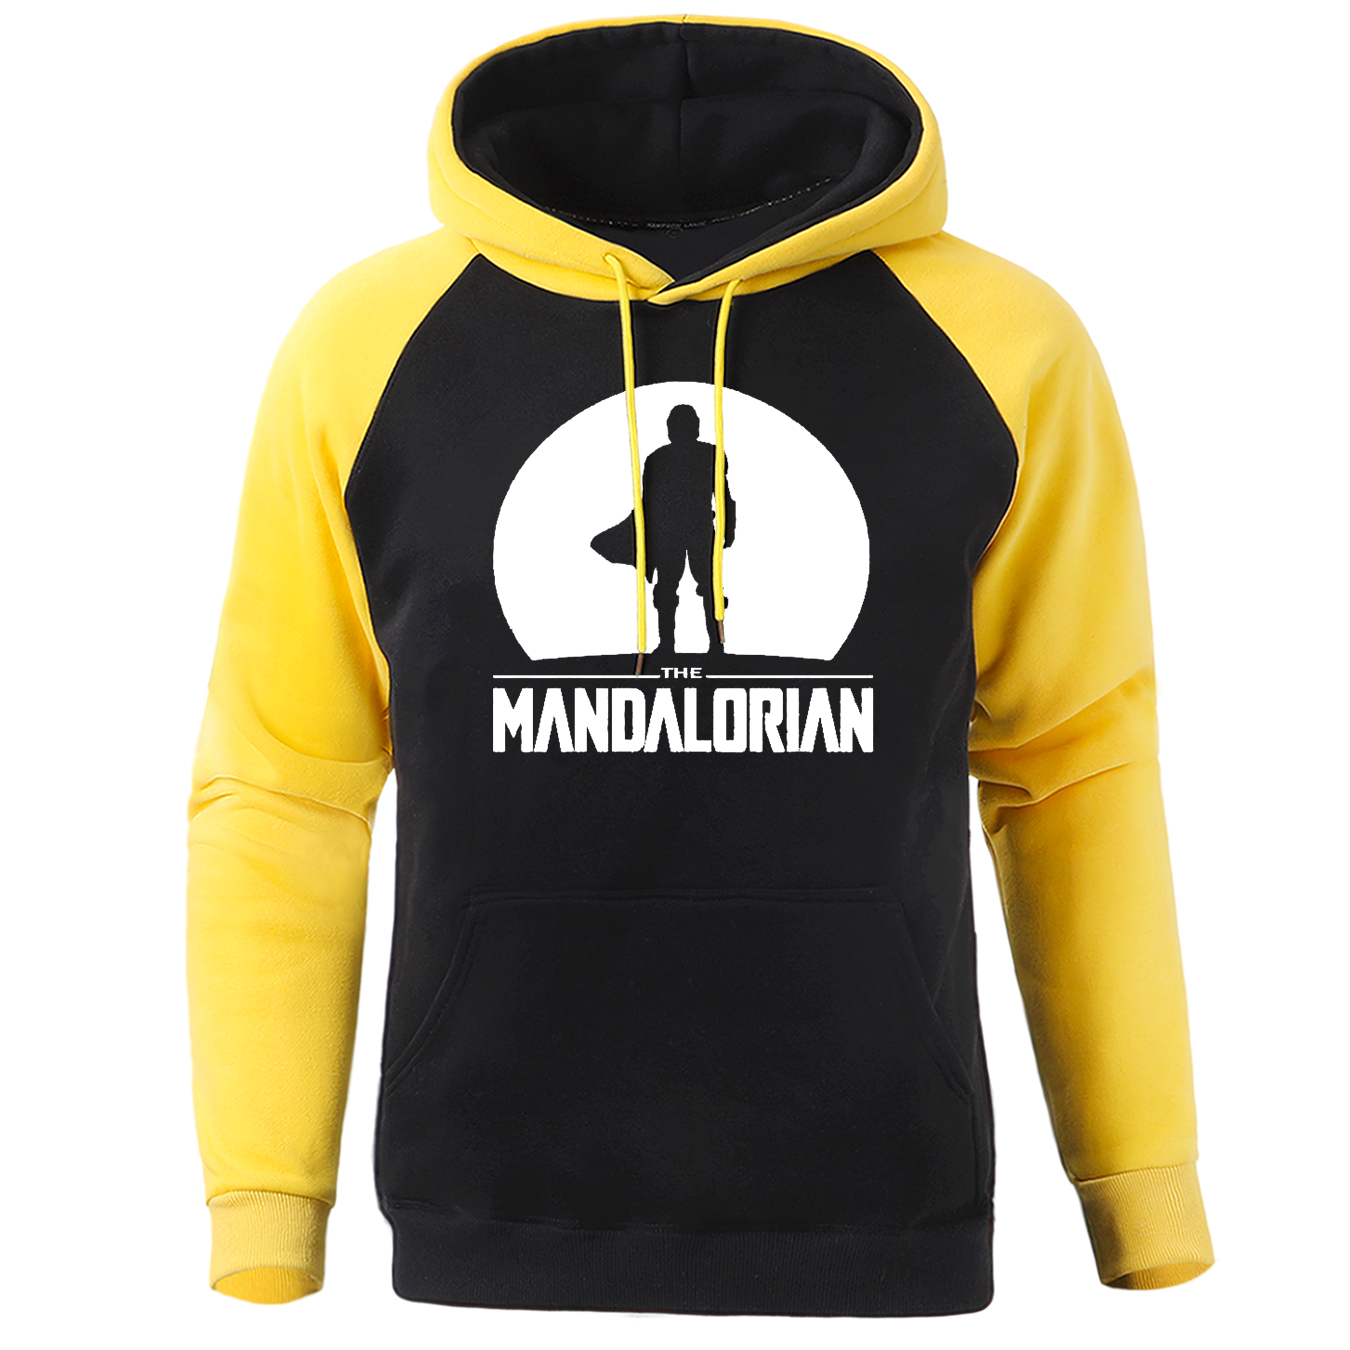 Mandalorian Star Wars Men Raglan Hoodies Streetwear Funny Print Pullover Spring Winter Casual Sweatshirts Hip Hop Fleece Hooded